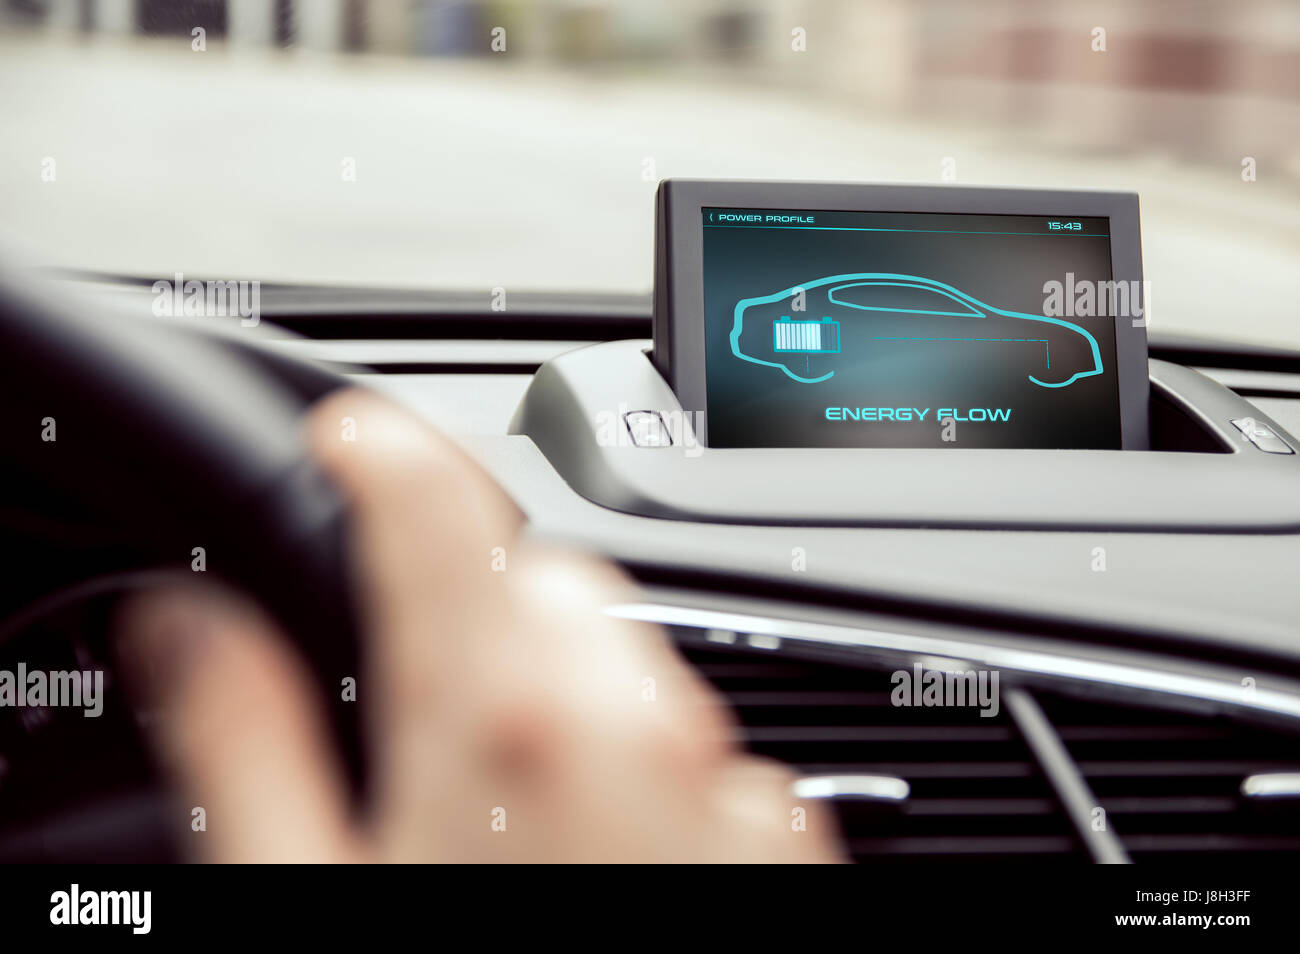 Electronic car display with information about energy flow - Stock Image